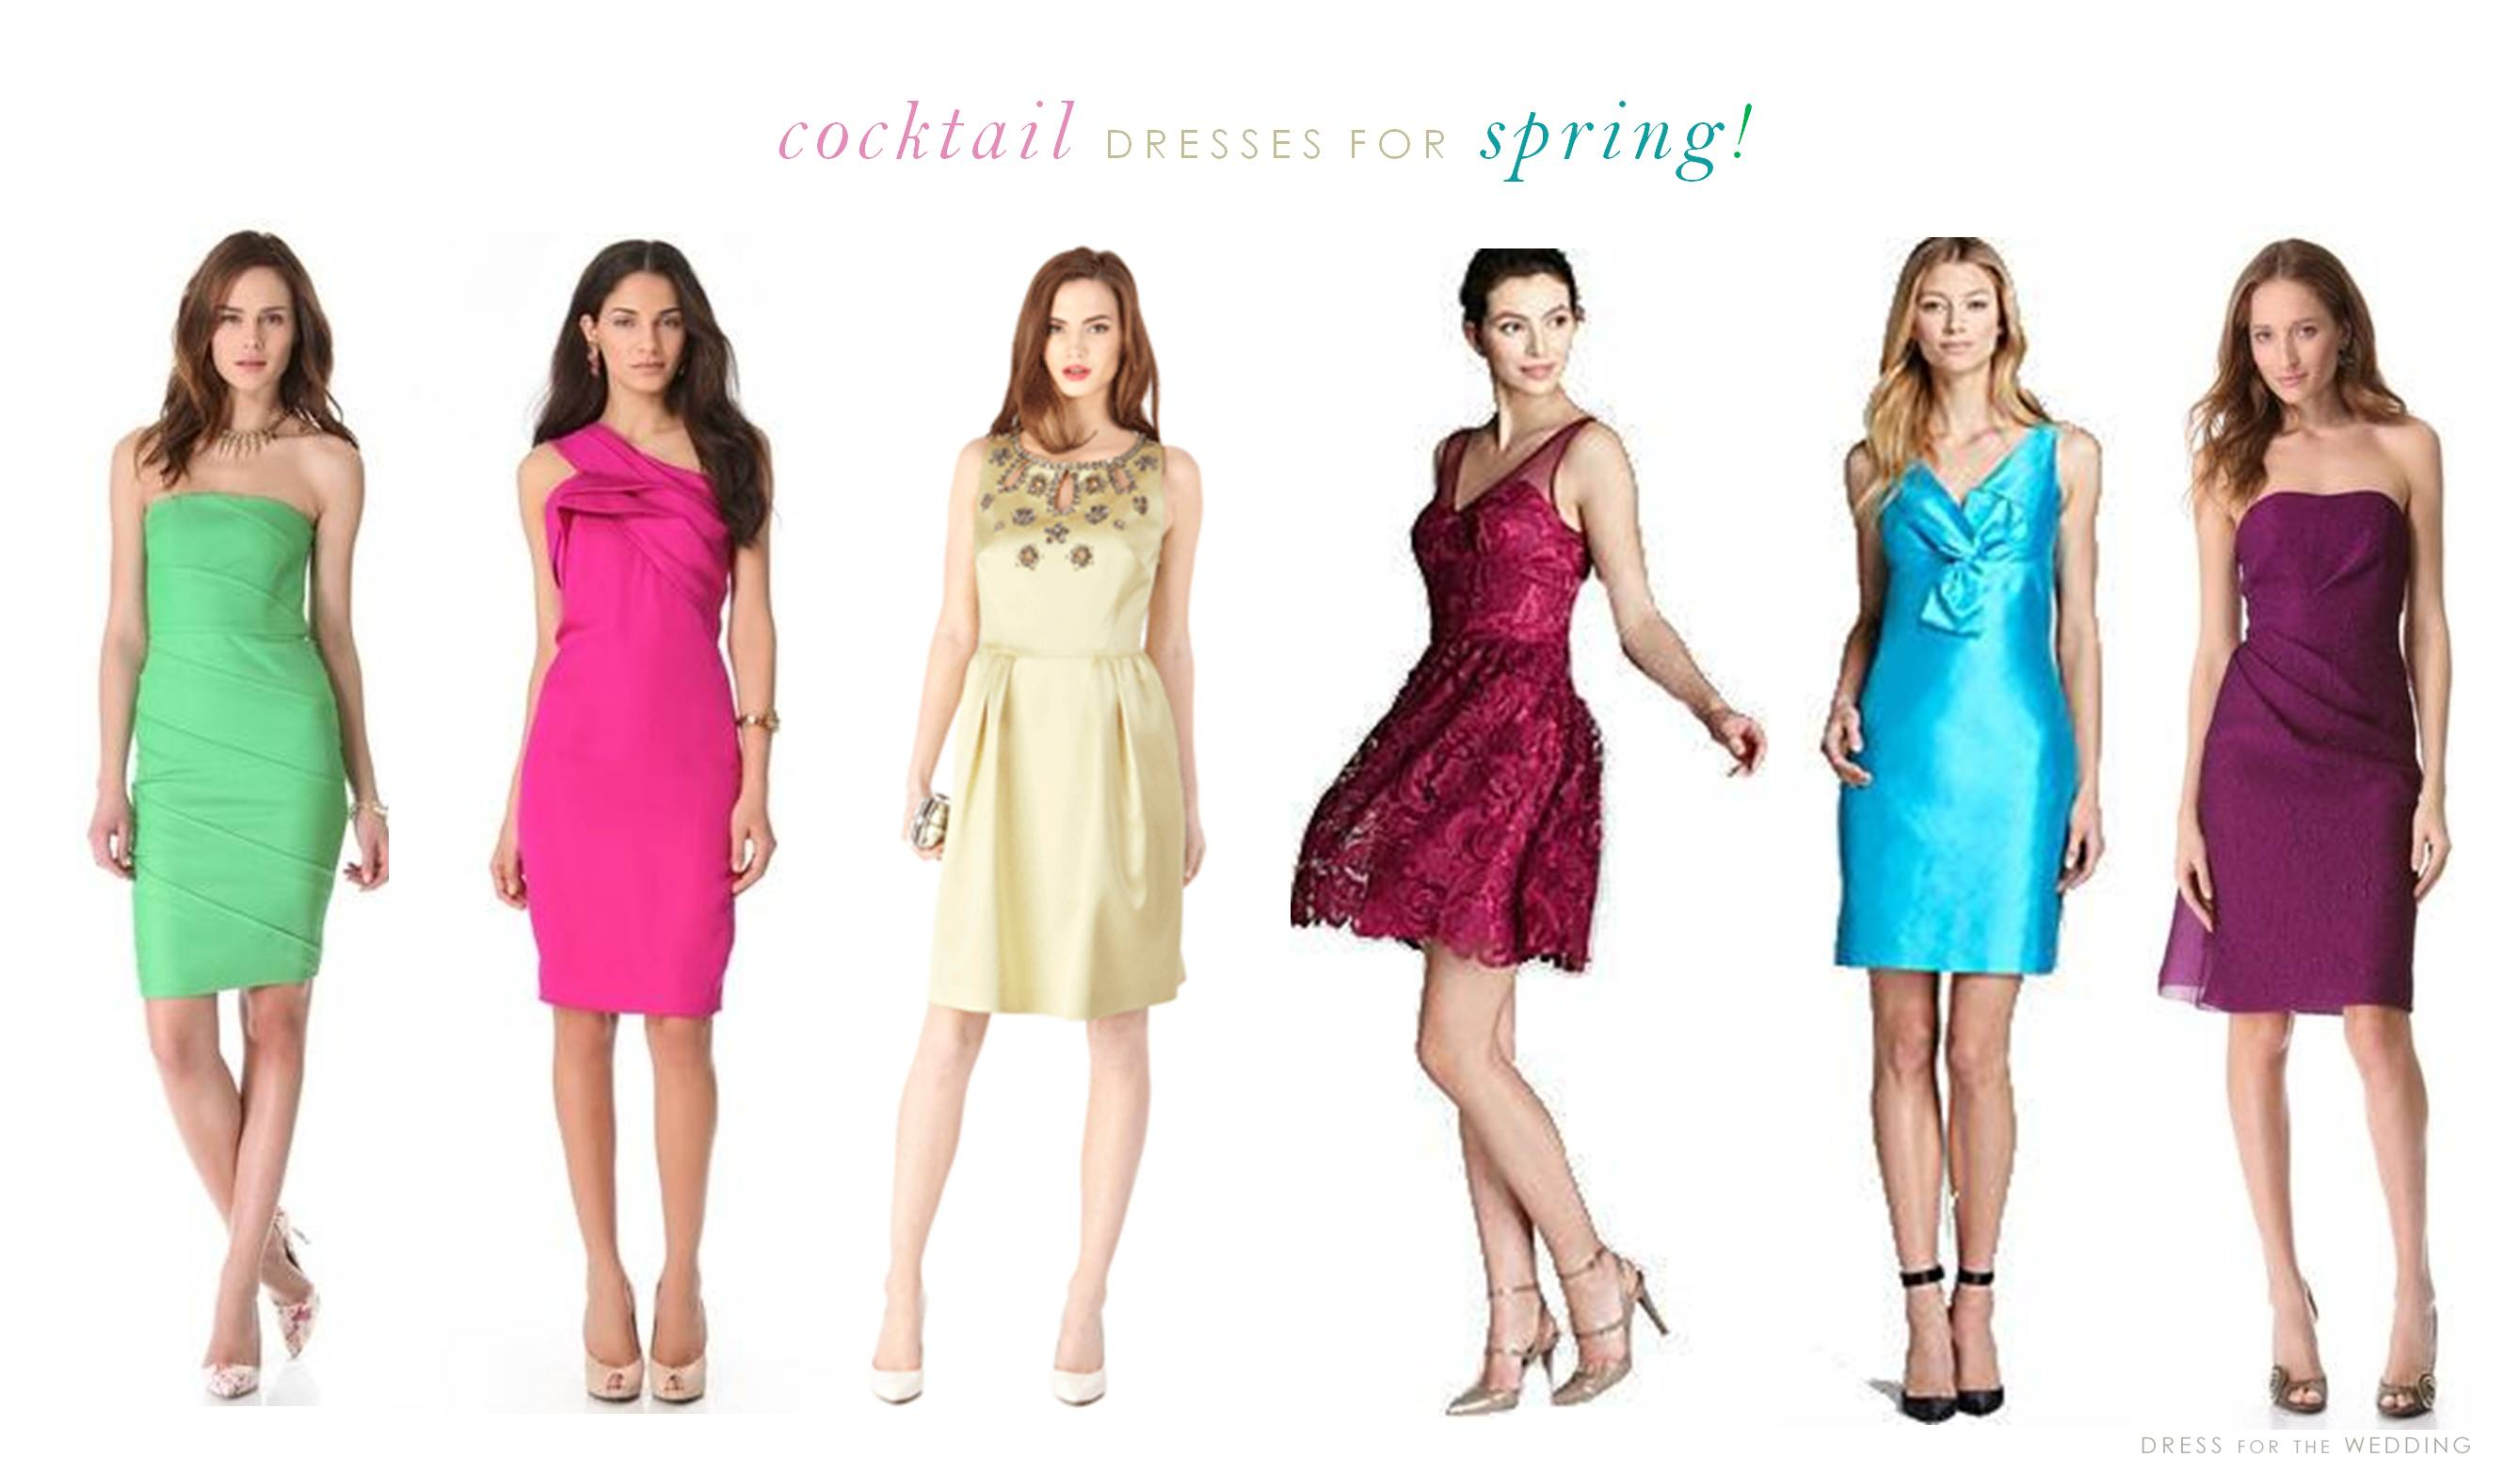 semi formal formal dresses for weddings Cocktail Dresses for Spring